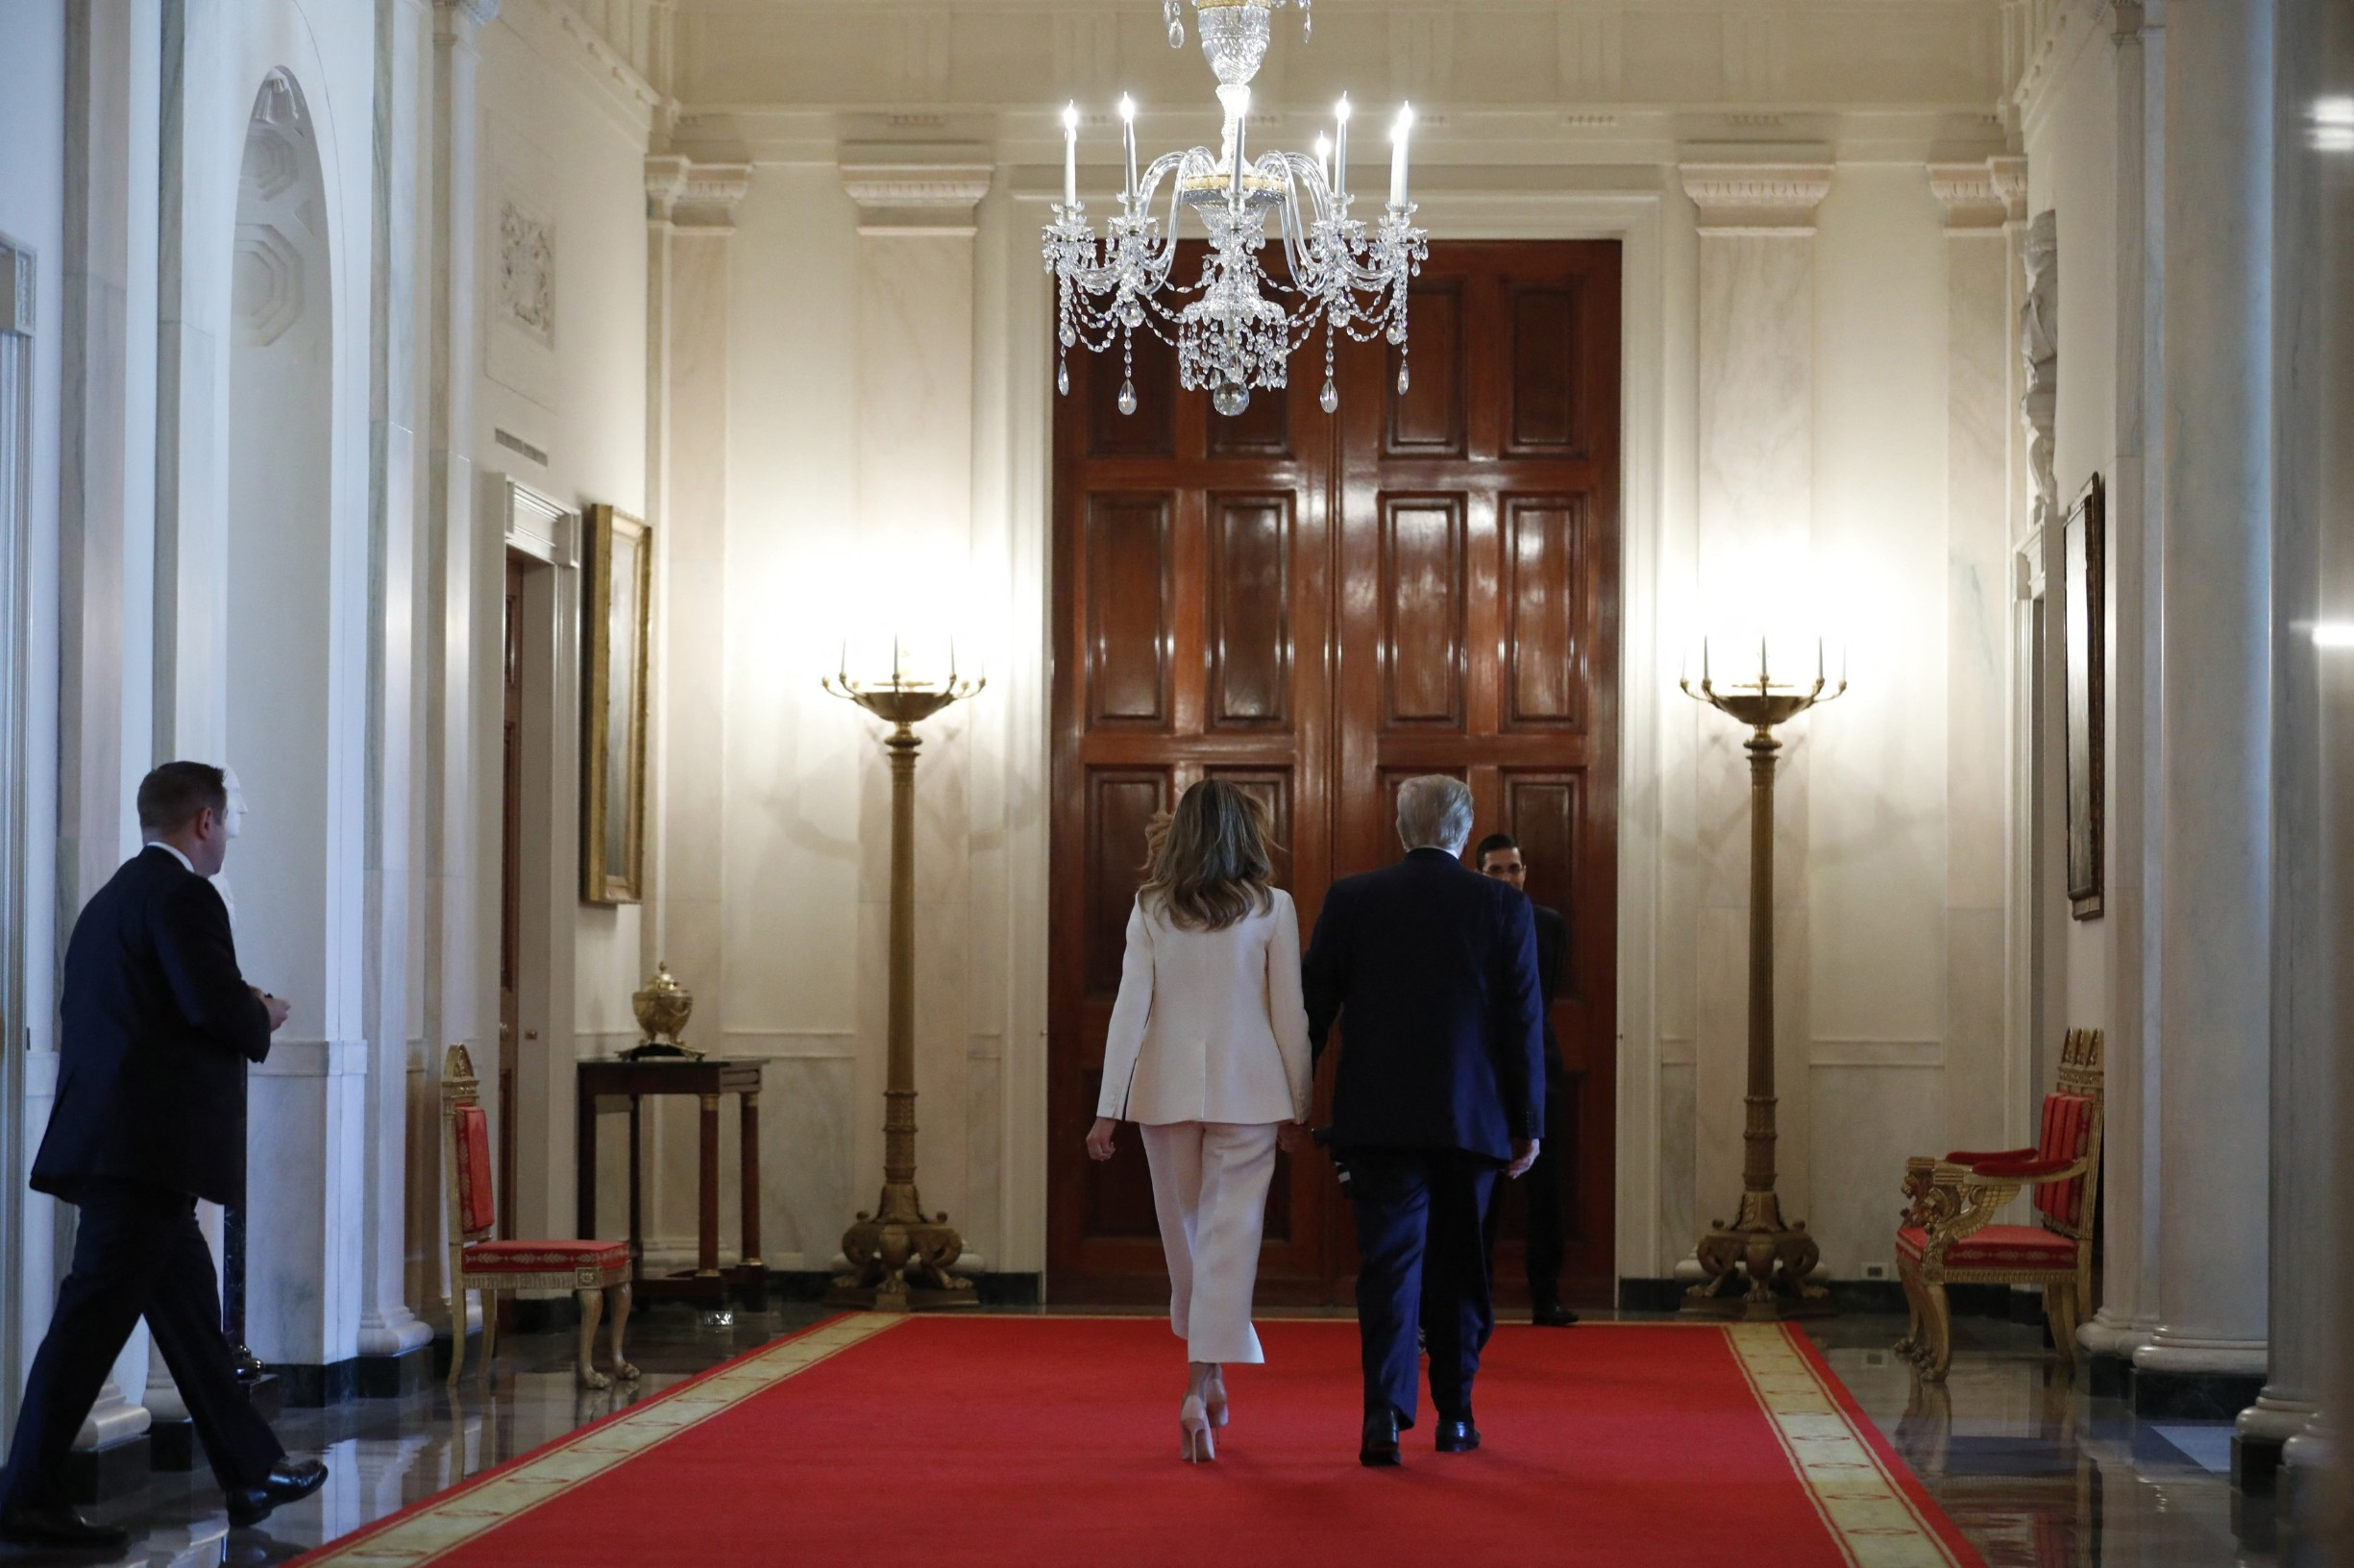 U.S. First Lady Melania Trump walks back with First Lady Melania Trump after presenting the Presidential Medal of Freedom to Mariano Rivera in the East Room of the White House in Washington on September 16, 2019. During his 19 seasons in Major League Baseball, Mariano Rivera established himself as the greatest relief pitcher of all time. Signed by the New York Yankees in 1990, Mr. Rivera would become a 13-time All-Star and 5-time World Series champion., Image: 471202634, License: Rights-managed, Restrictions: , Model Release: no, Credit line: Profimedia, Abaca Press